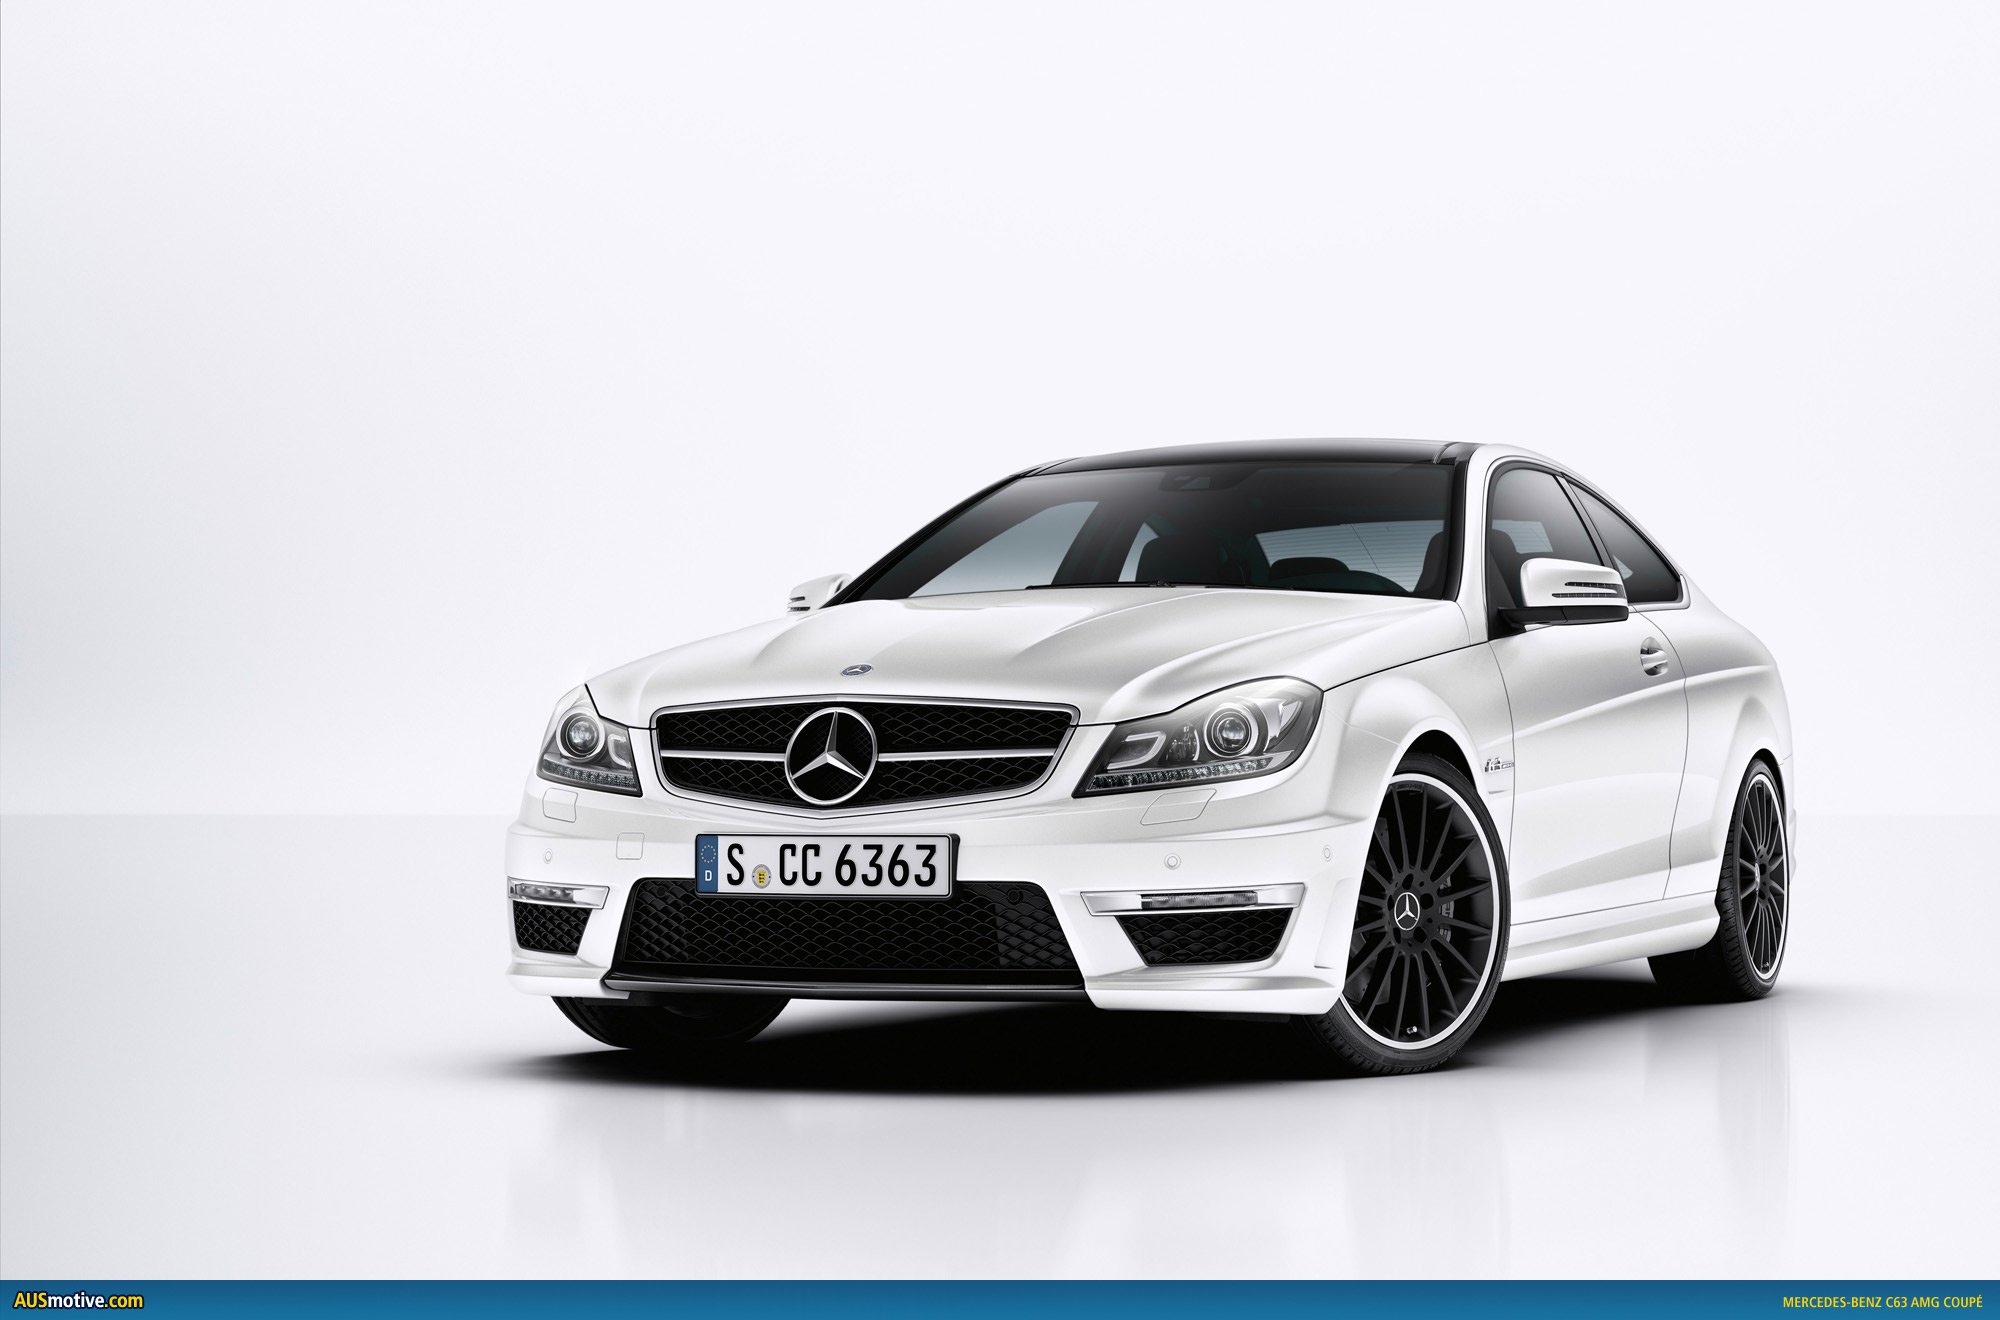 mercedes benz c63 amg coup photo gallery. Black Bedroom Furniture Sets. Home Design Ideas